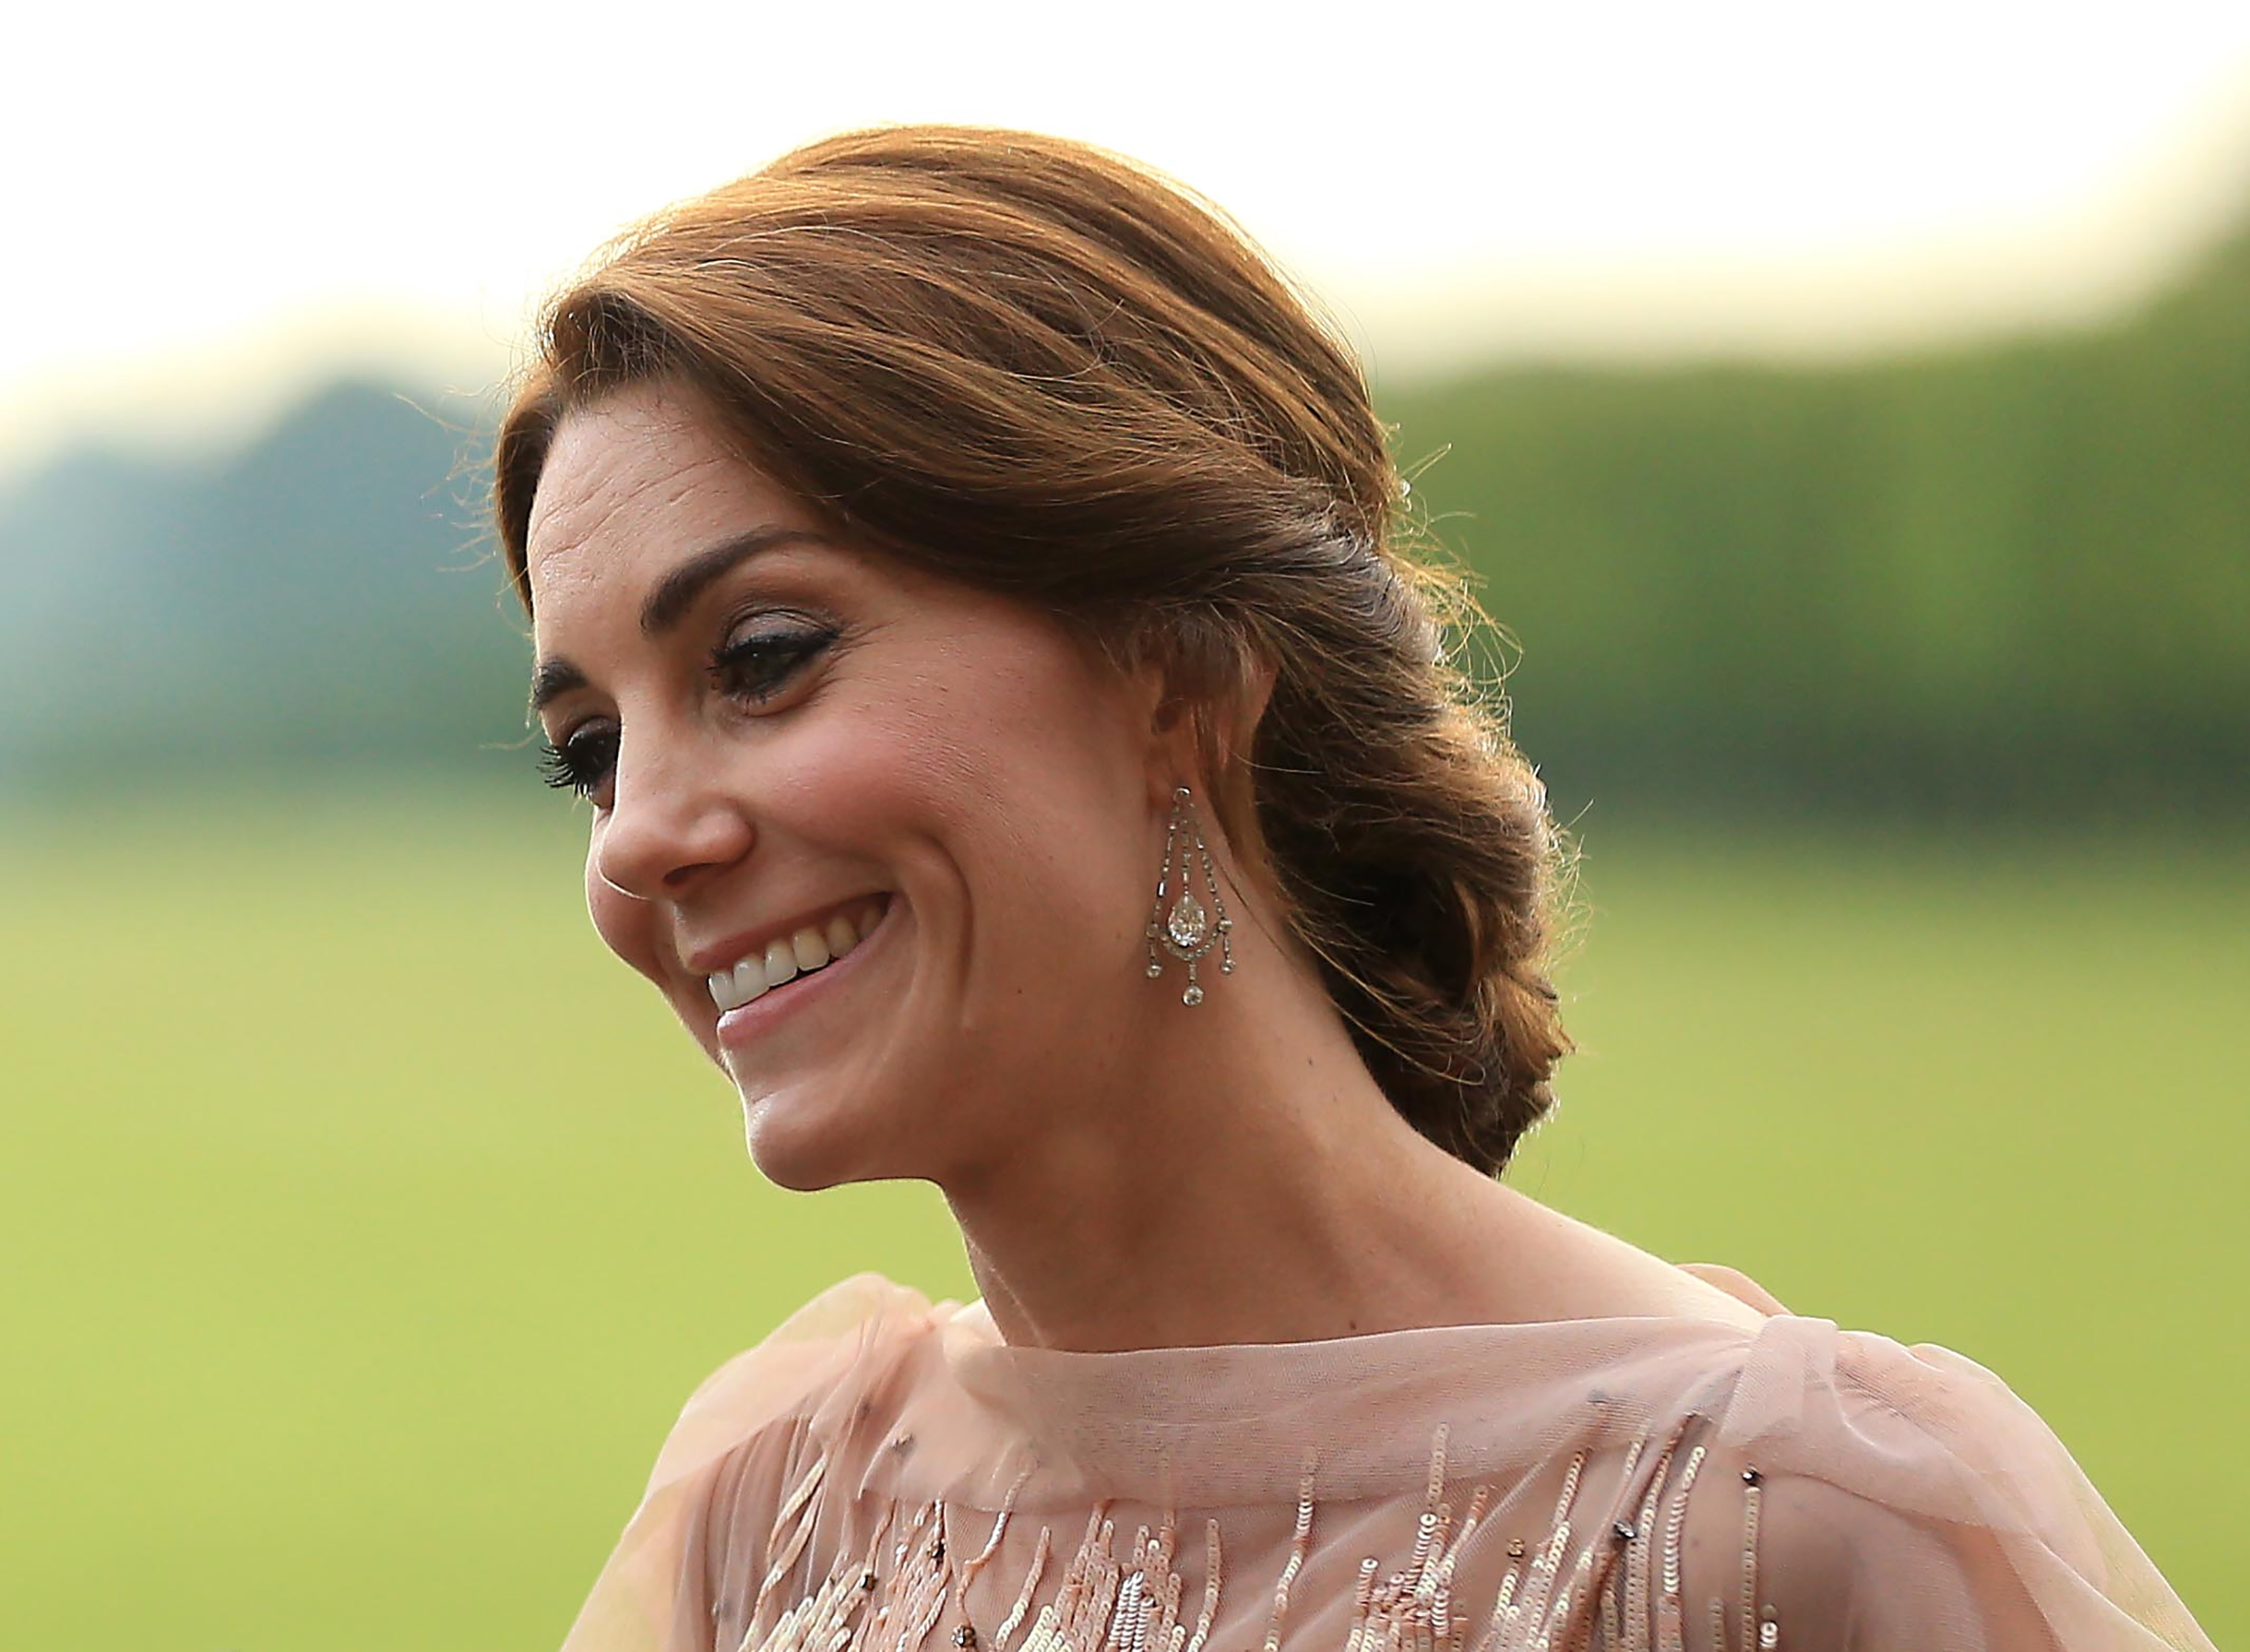 The Duke and Duchess of Cambridge attend a gala dinner in support of East Anglia's Children's Hospices' Nook appeal at Houghton Hall, King's Lynn, Norfolk, UK, on the 22nd June 2016. Picture by Stephen Pond/WPA-Pool Pictured: Duchess of Cambridge, Catherine, Kate Middleton Ref: SPL1306786  220616   Picture by: Splash News Splash News and Pictures Los Angeles:310-821-2666 New York:	212-619-2666 London:	870-934-2666 photodesk@splashnews.com